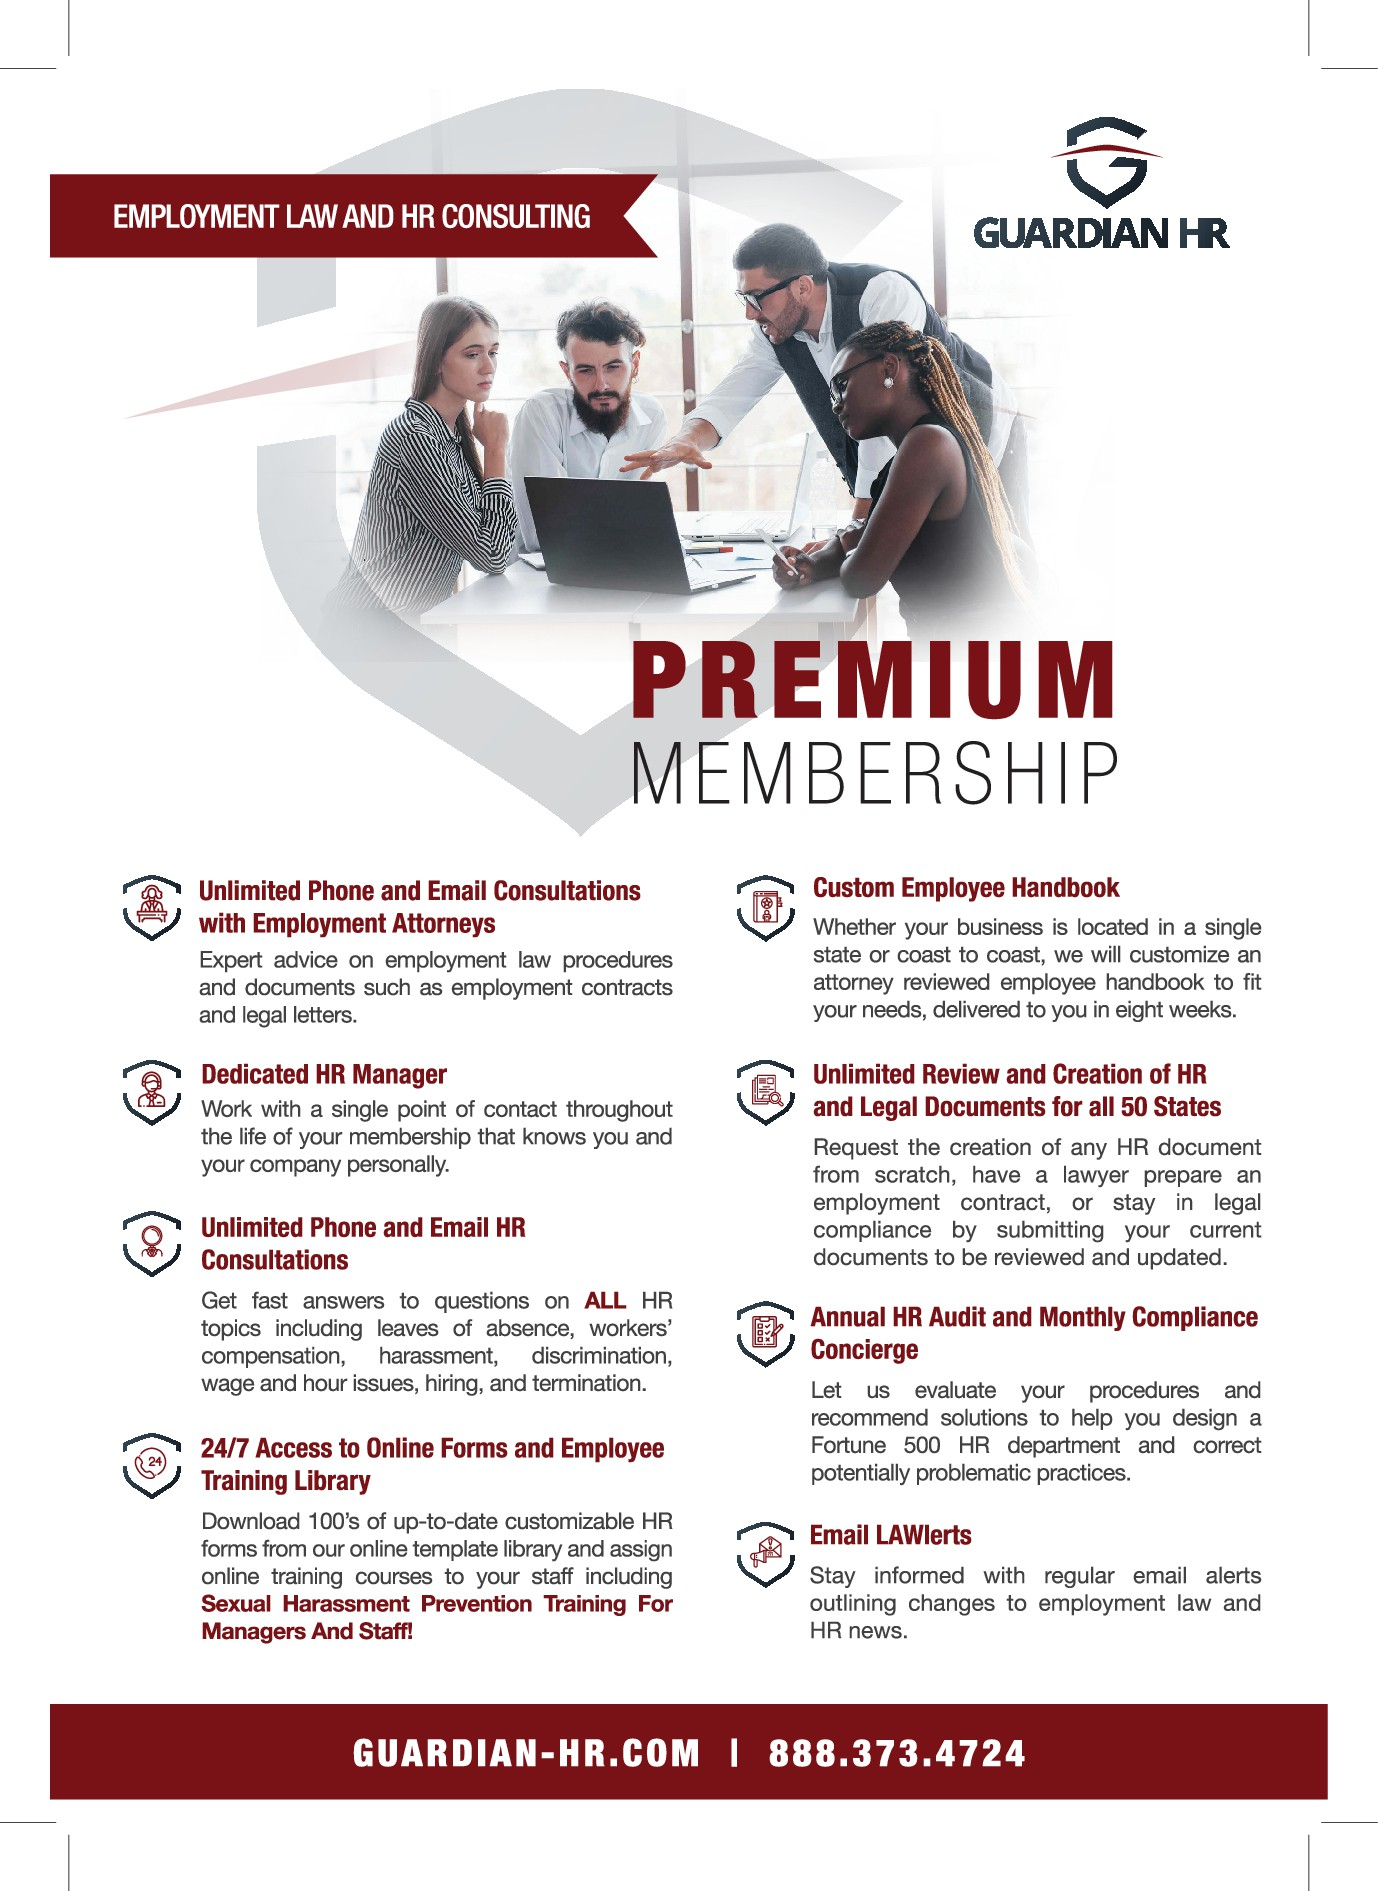 Design a professional, modern flyer for an HR and employment law consulting company